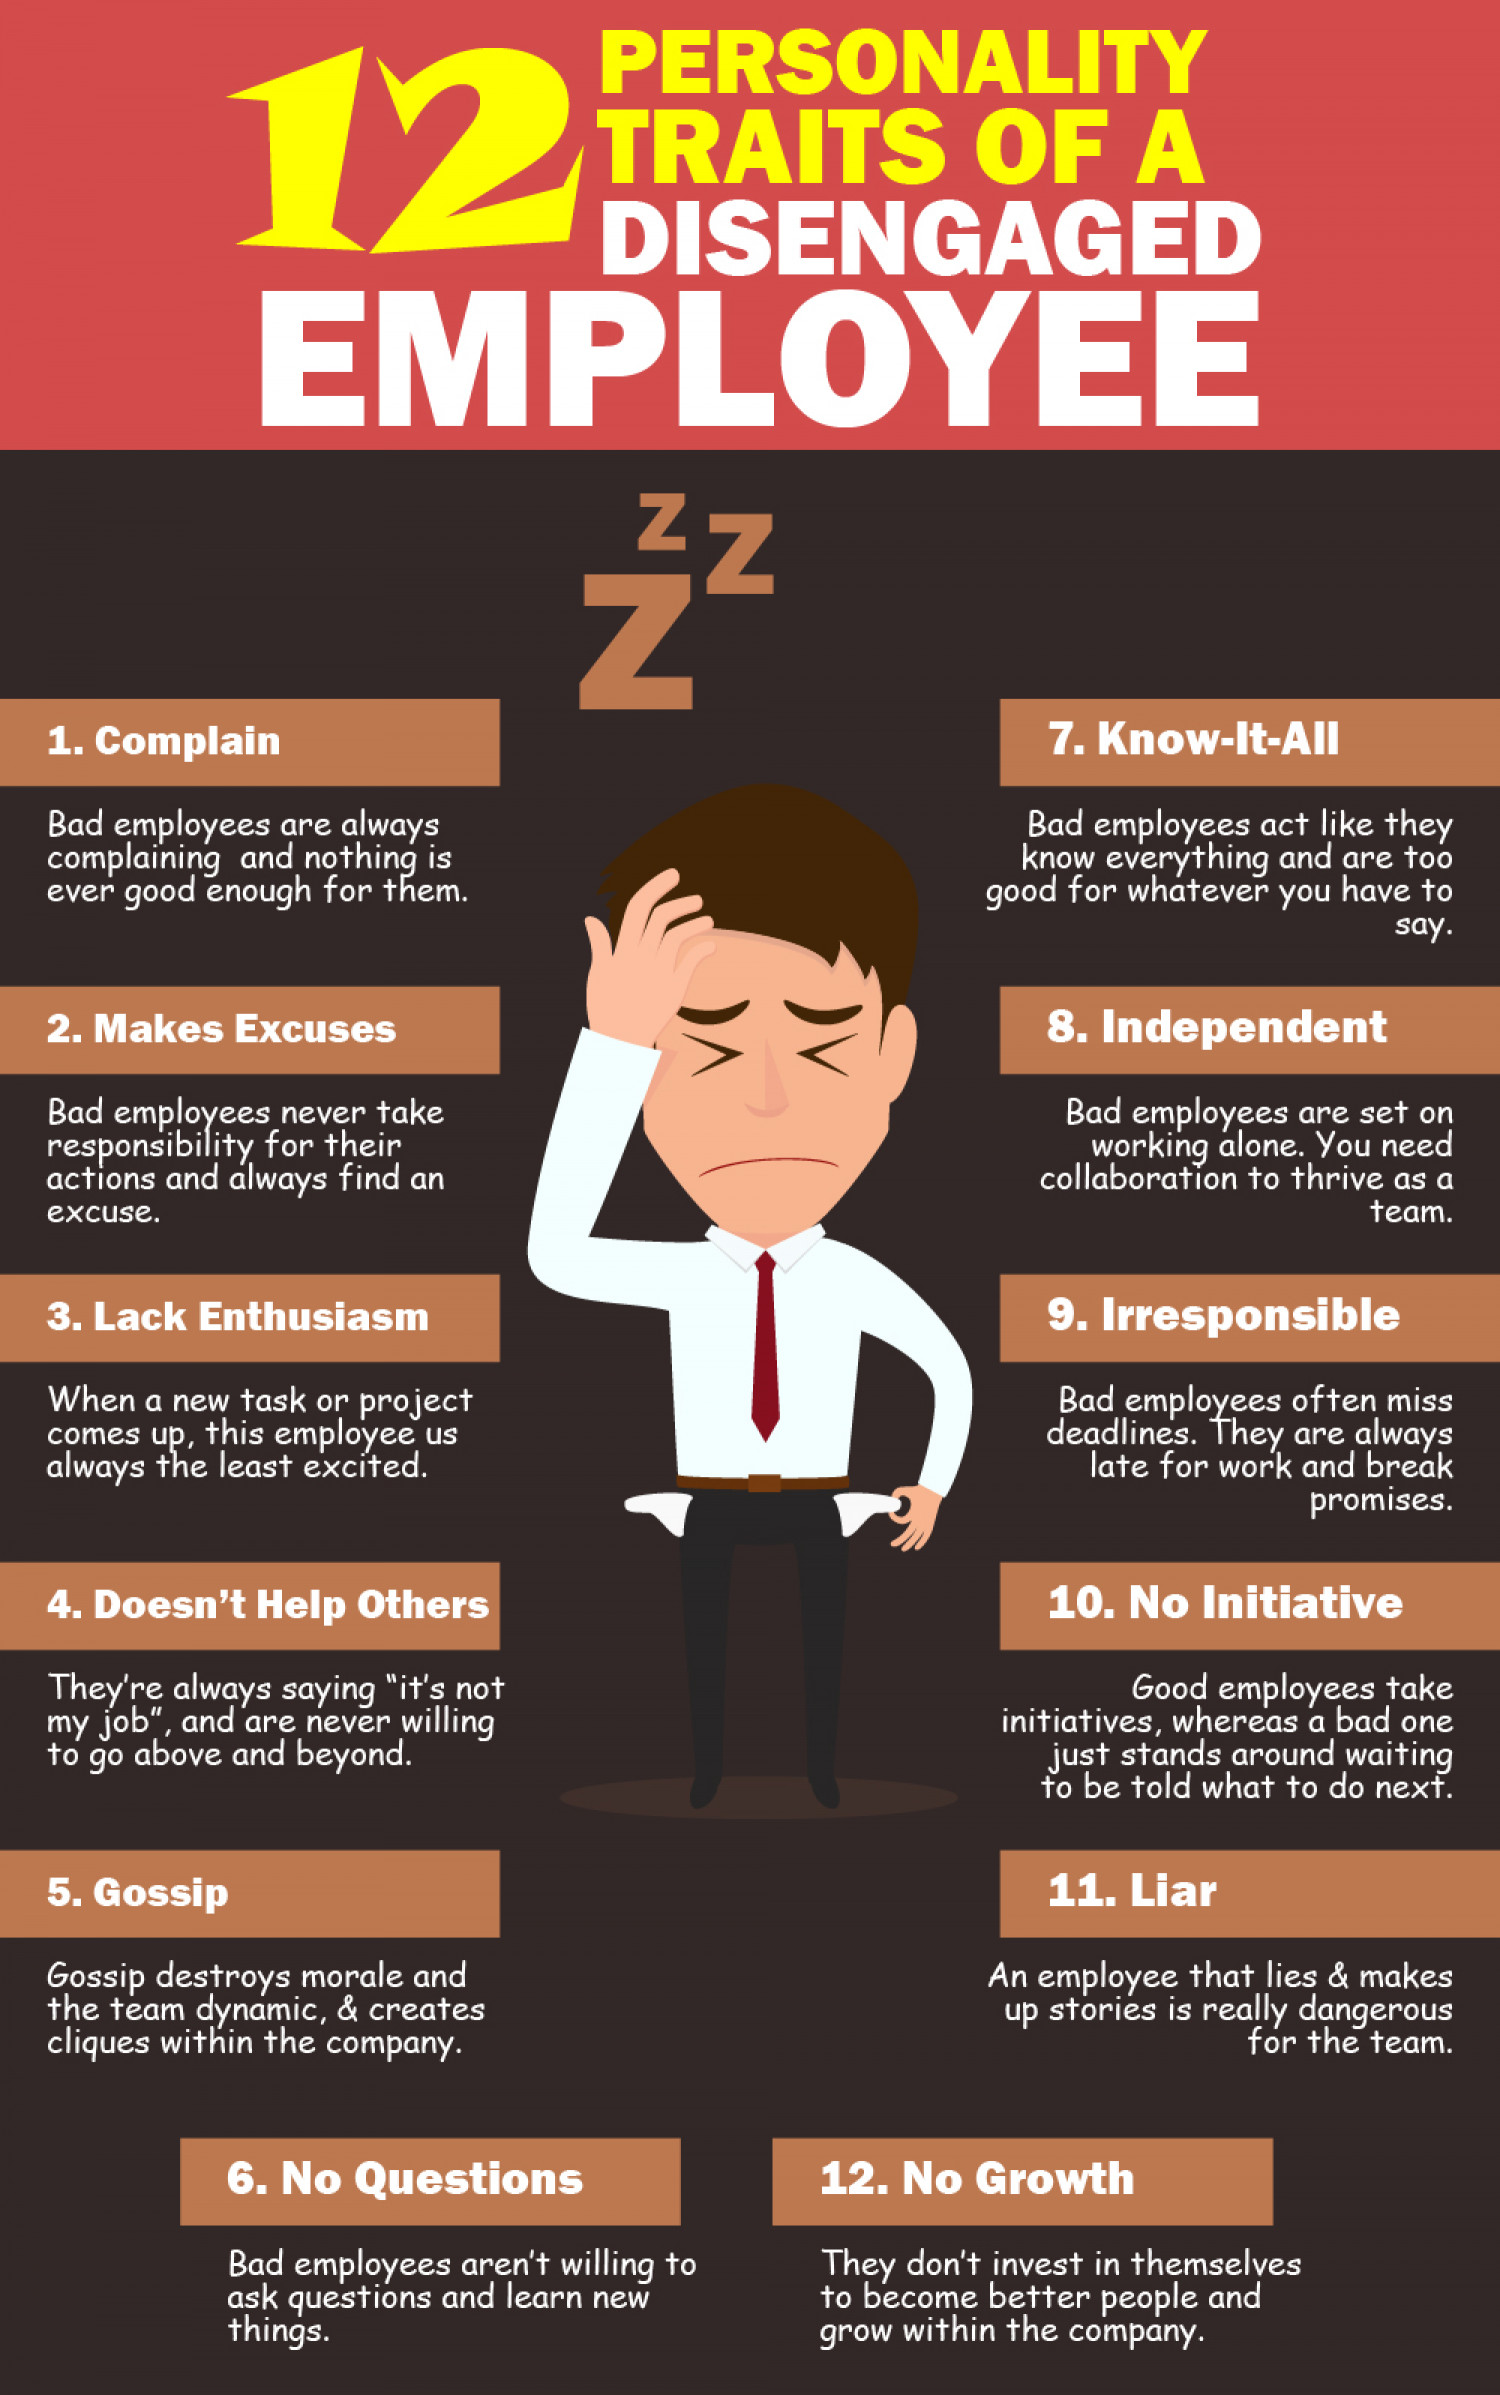 12 Signs Of Disengaged Employee Infographic